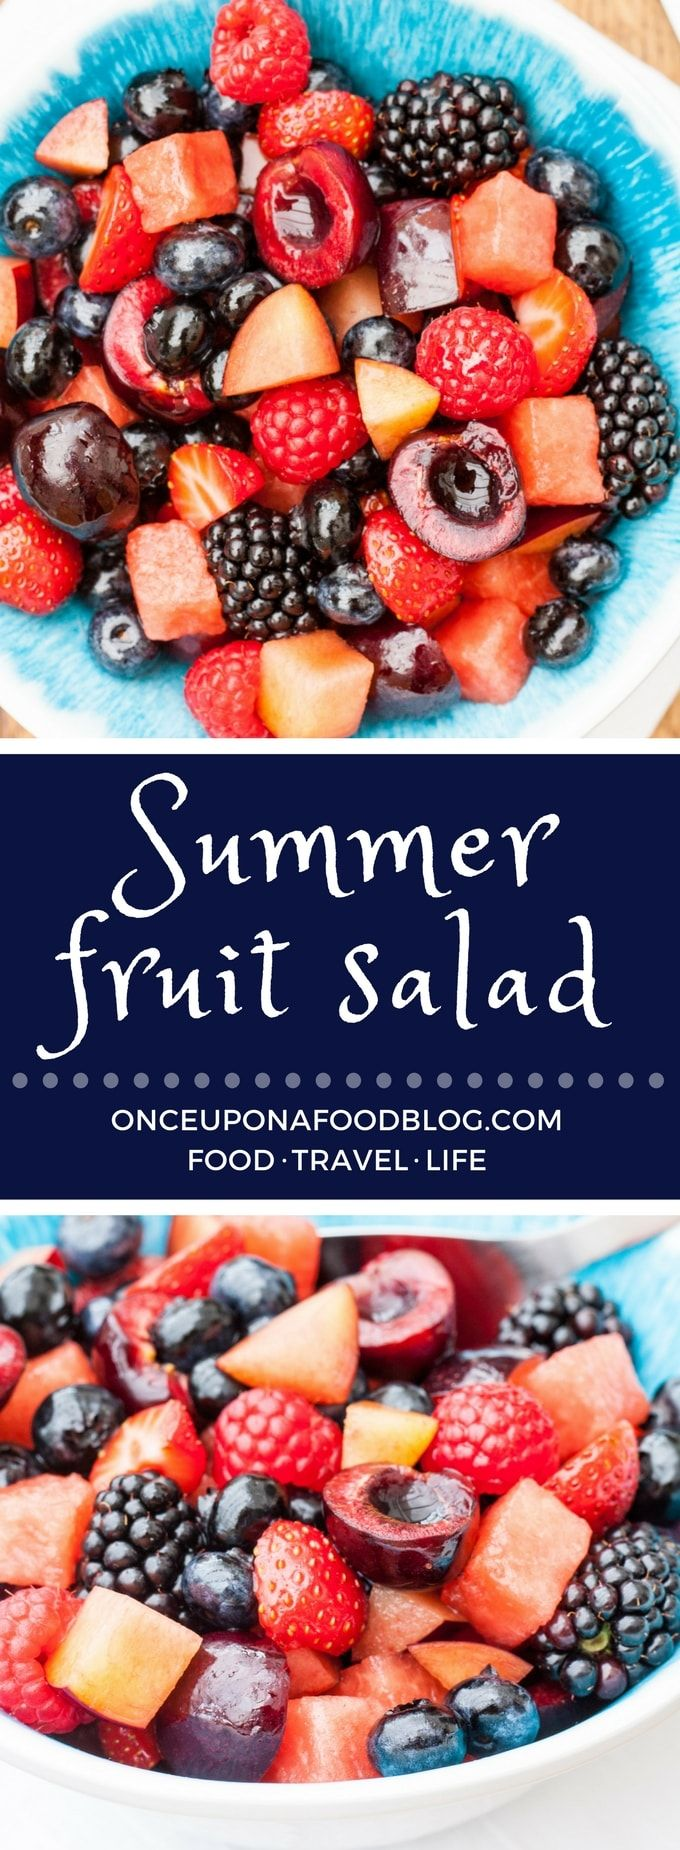 A gorgeous fruit salad, that tastes of the summer, served with a choice of dressings.